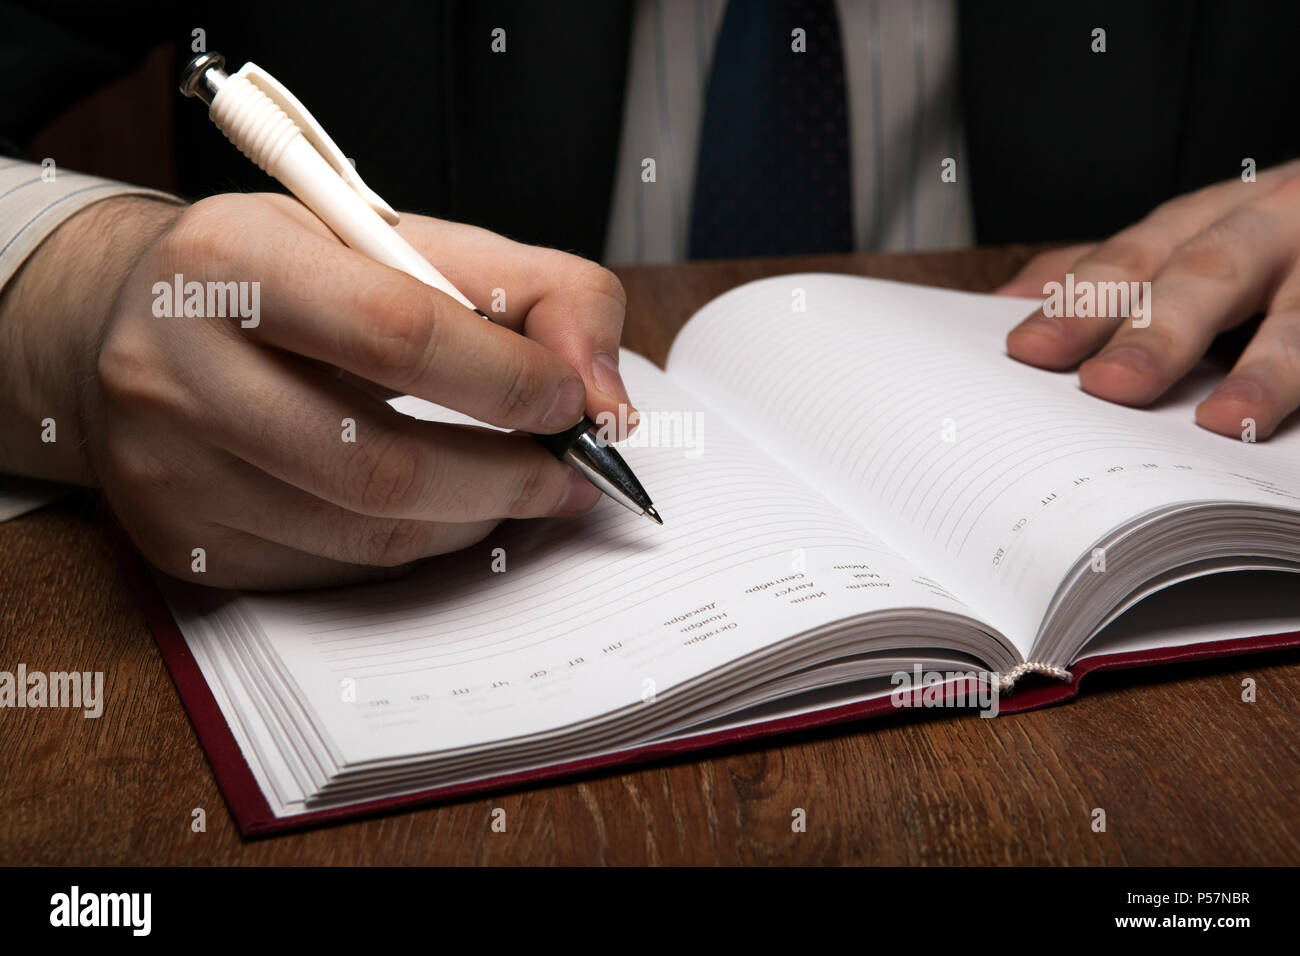 man running with diaries with pen close up - Stock Image